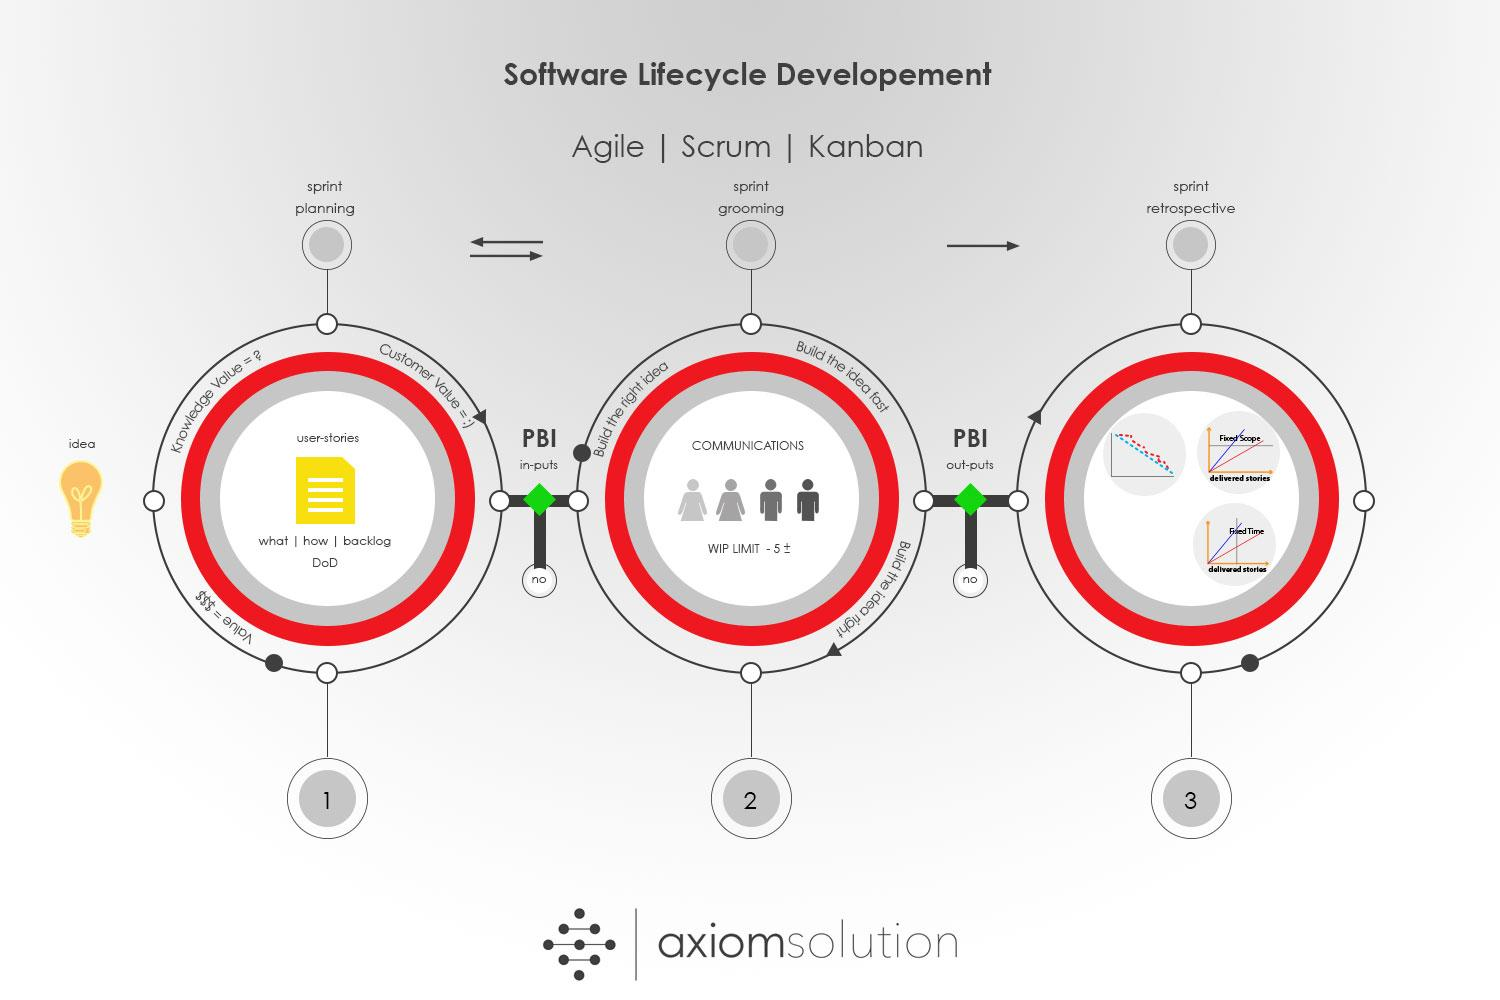 SDLC methodology axiomsolution